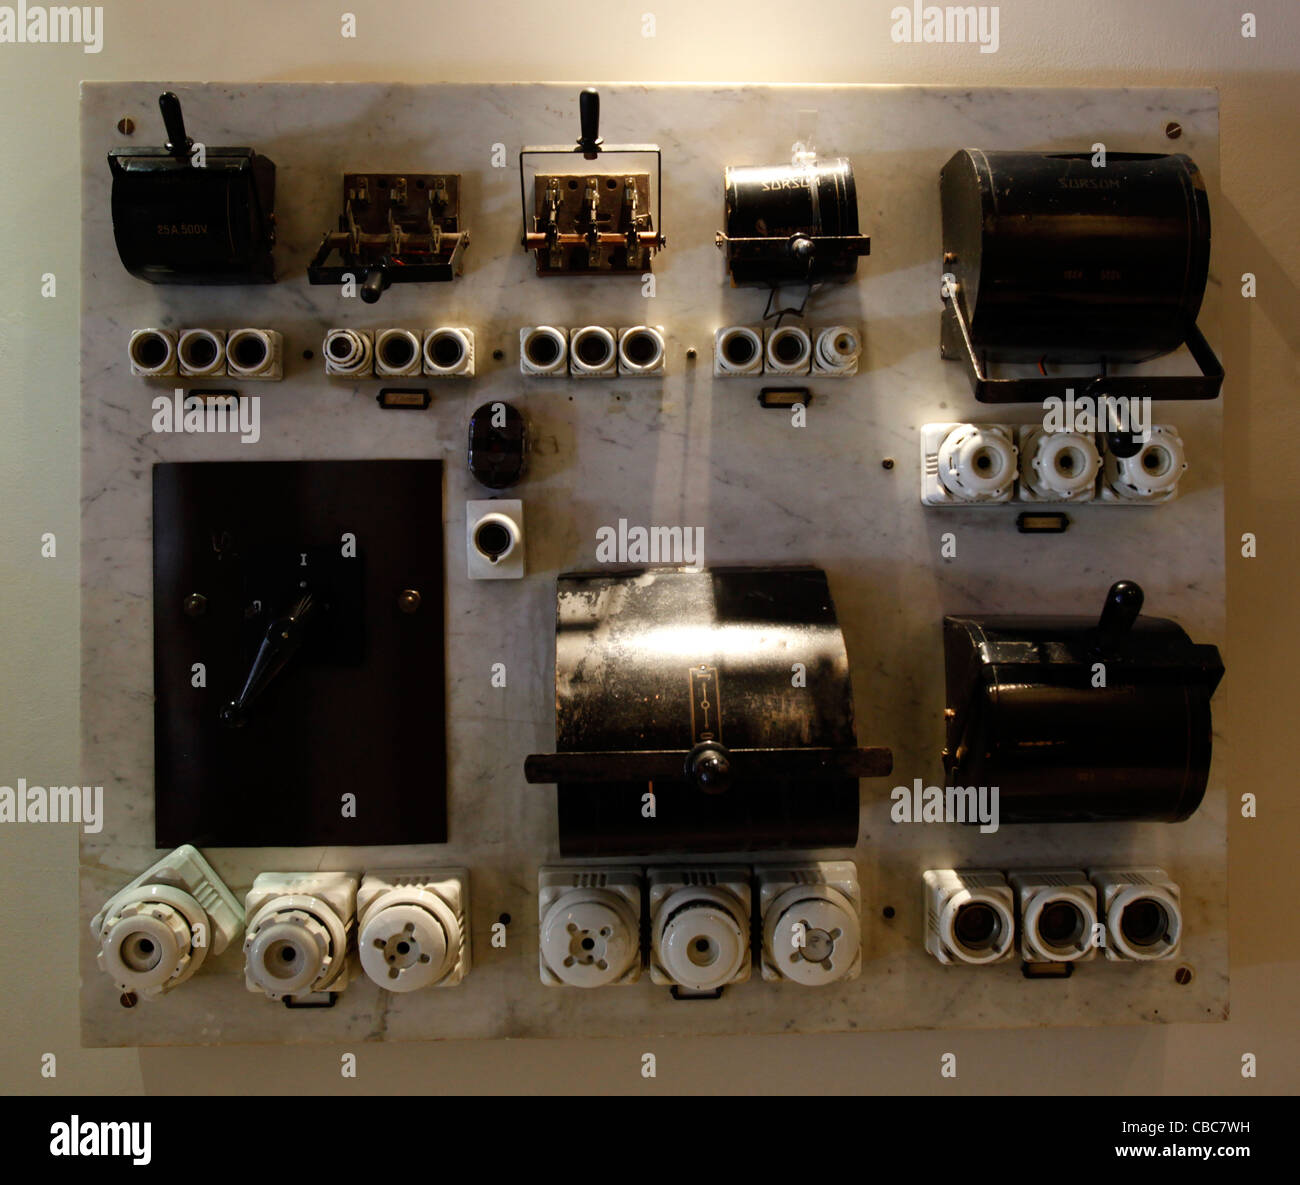 old fuses fuse box stock photos old fuses fuse box stock images rh alamy com fuse box glass fuses main fuse box fuses